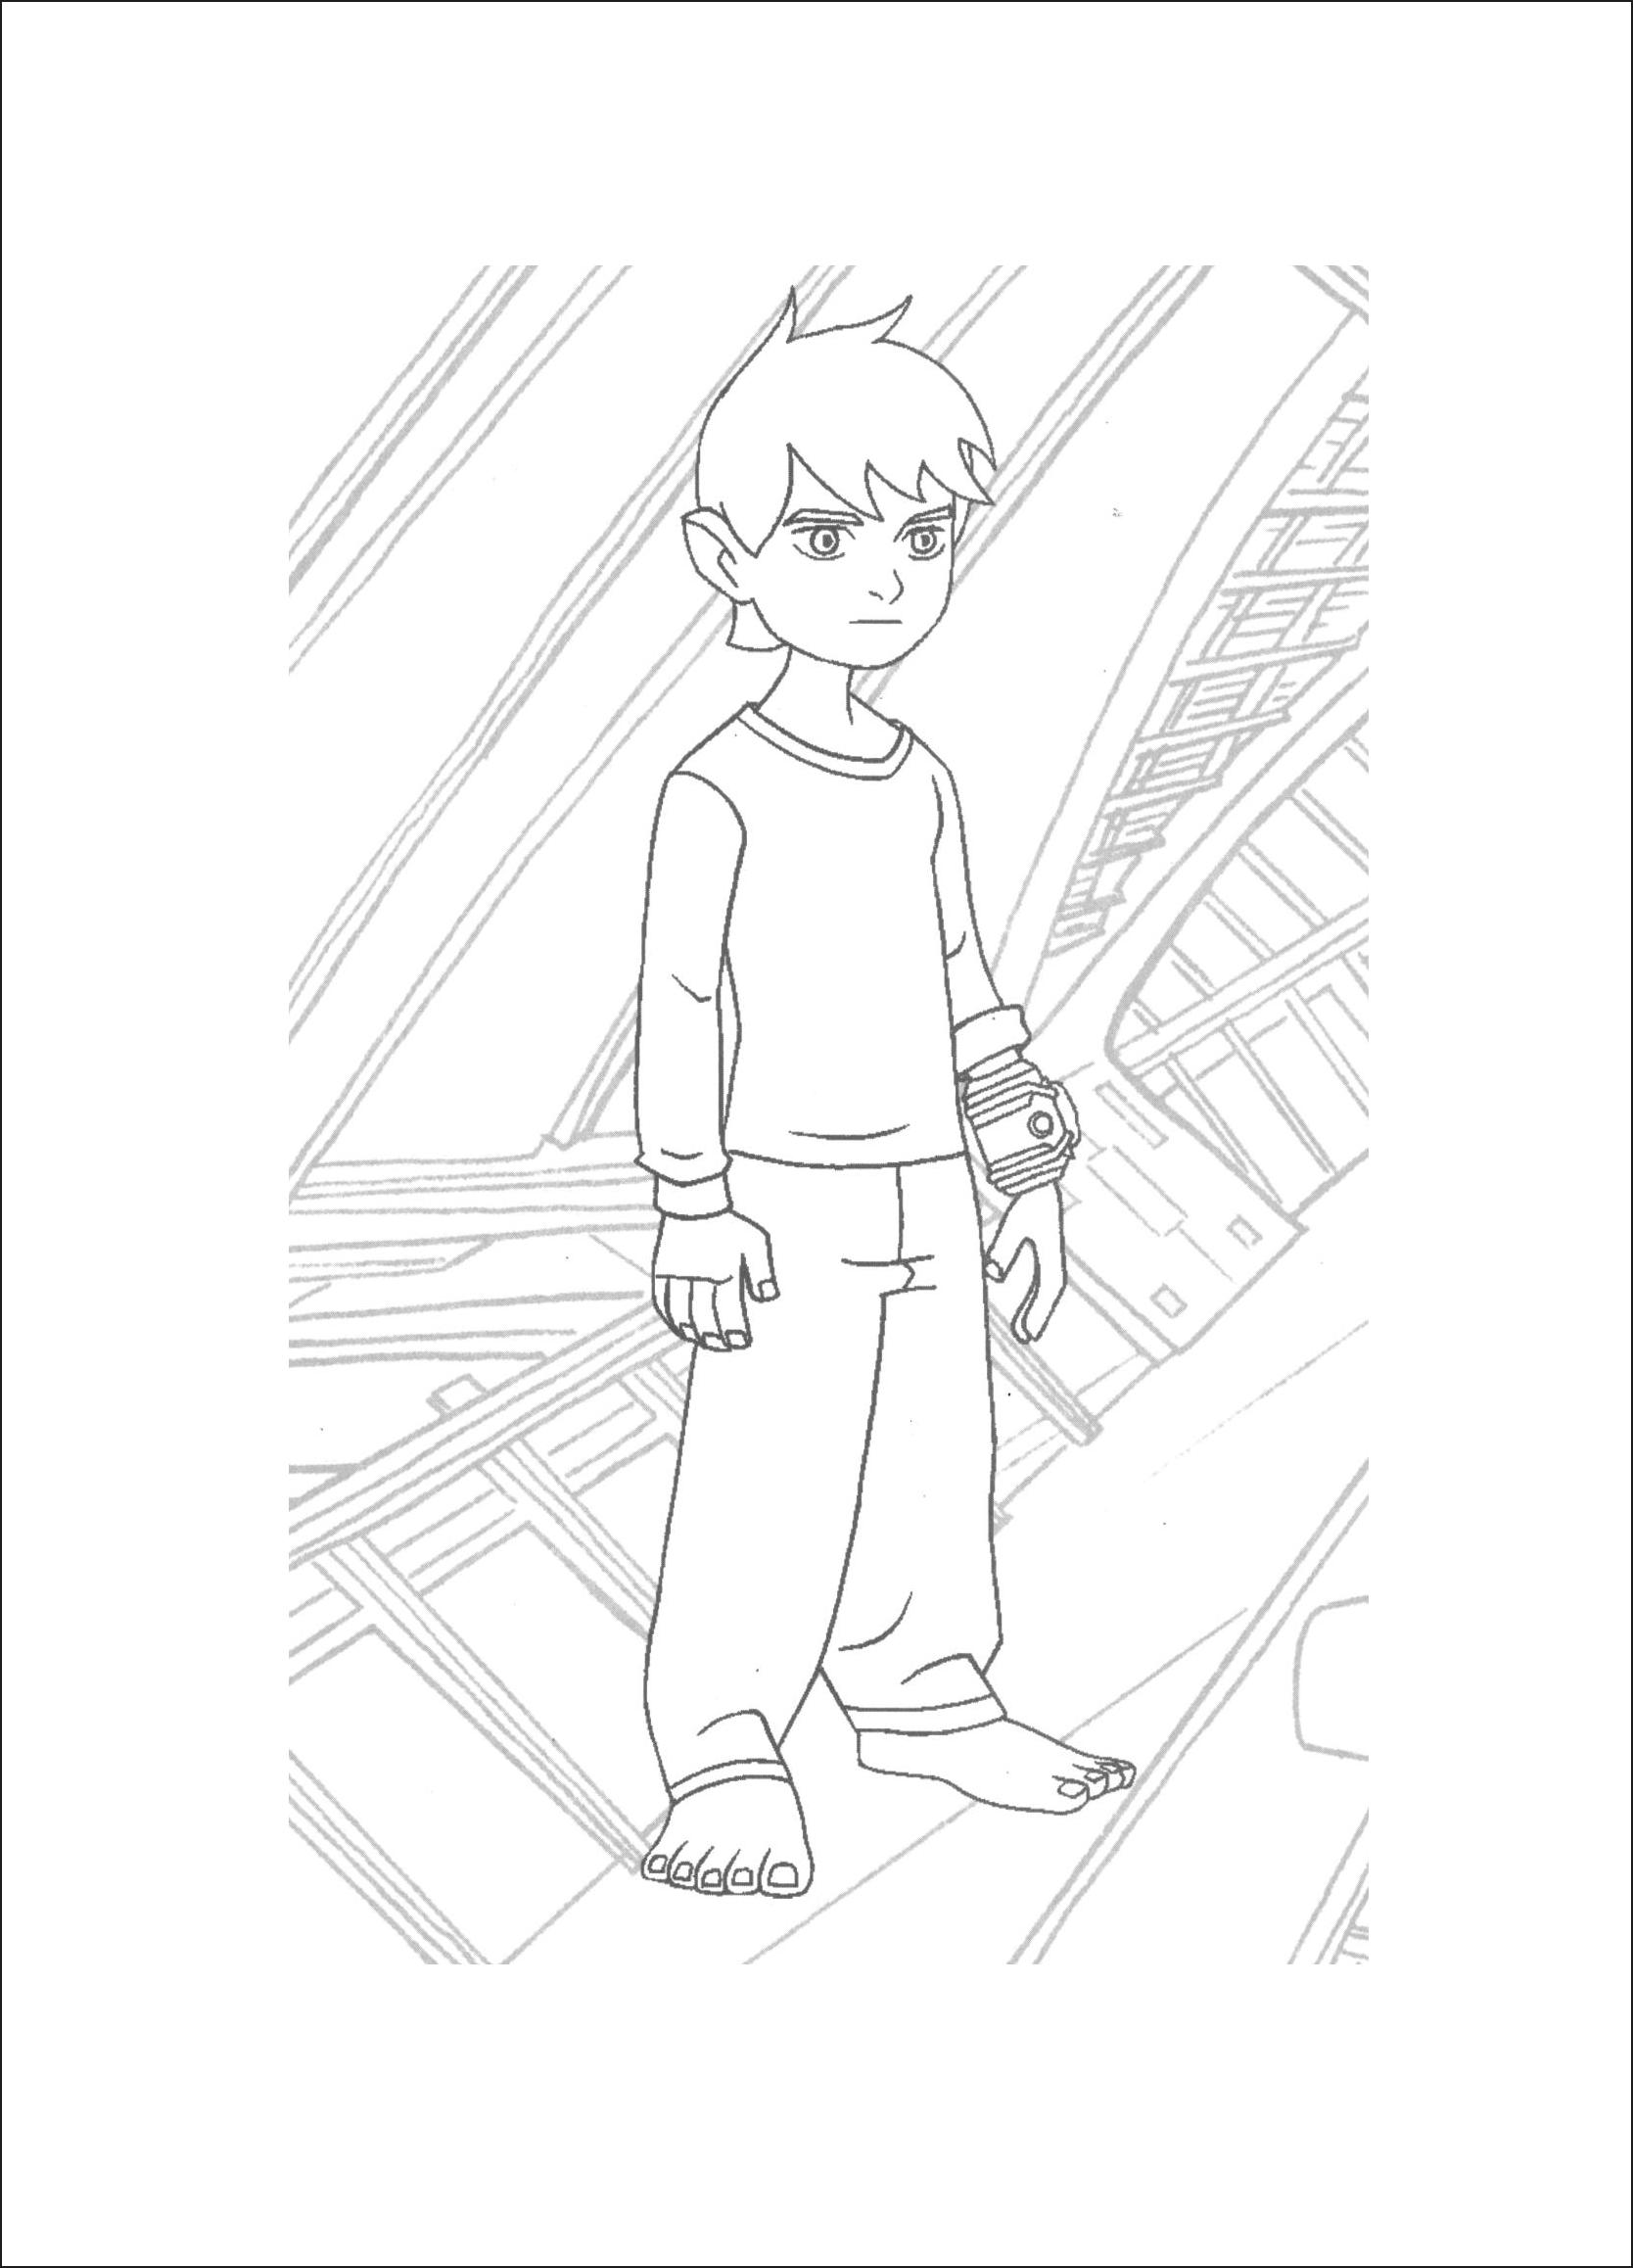 Ben 10 Cartoon Network Free Coloring Pages To Print